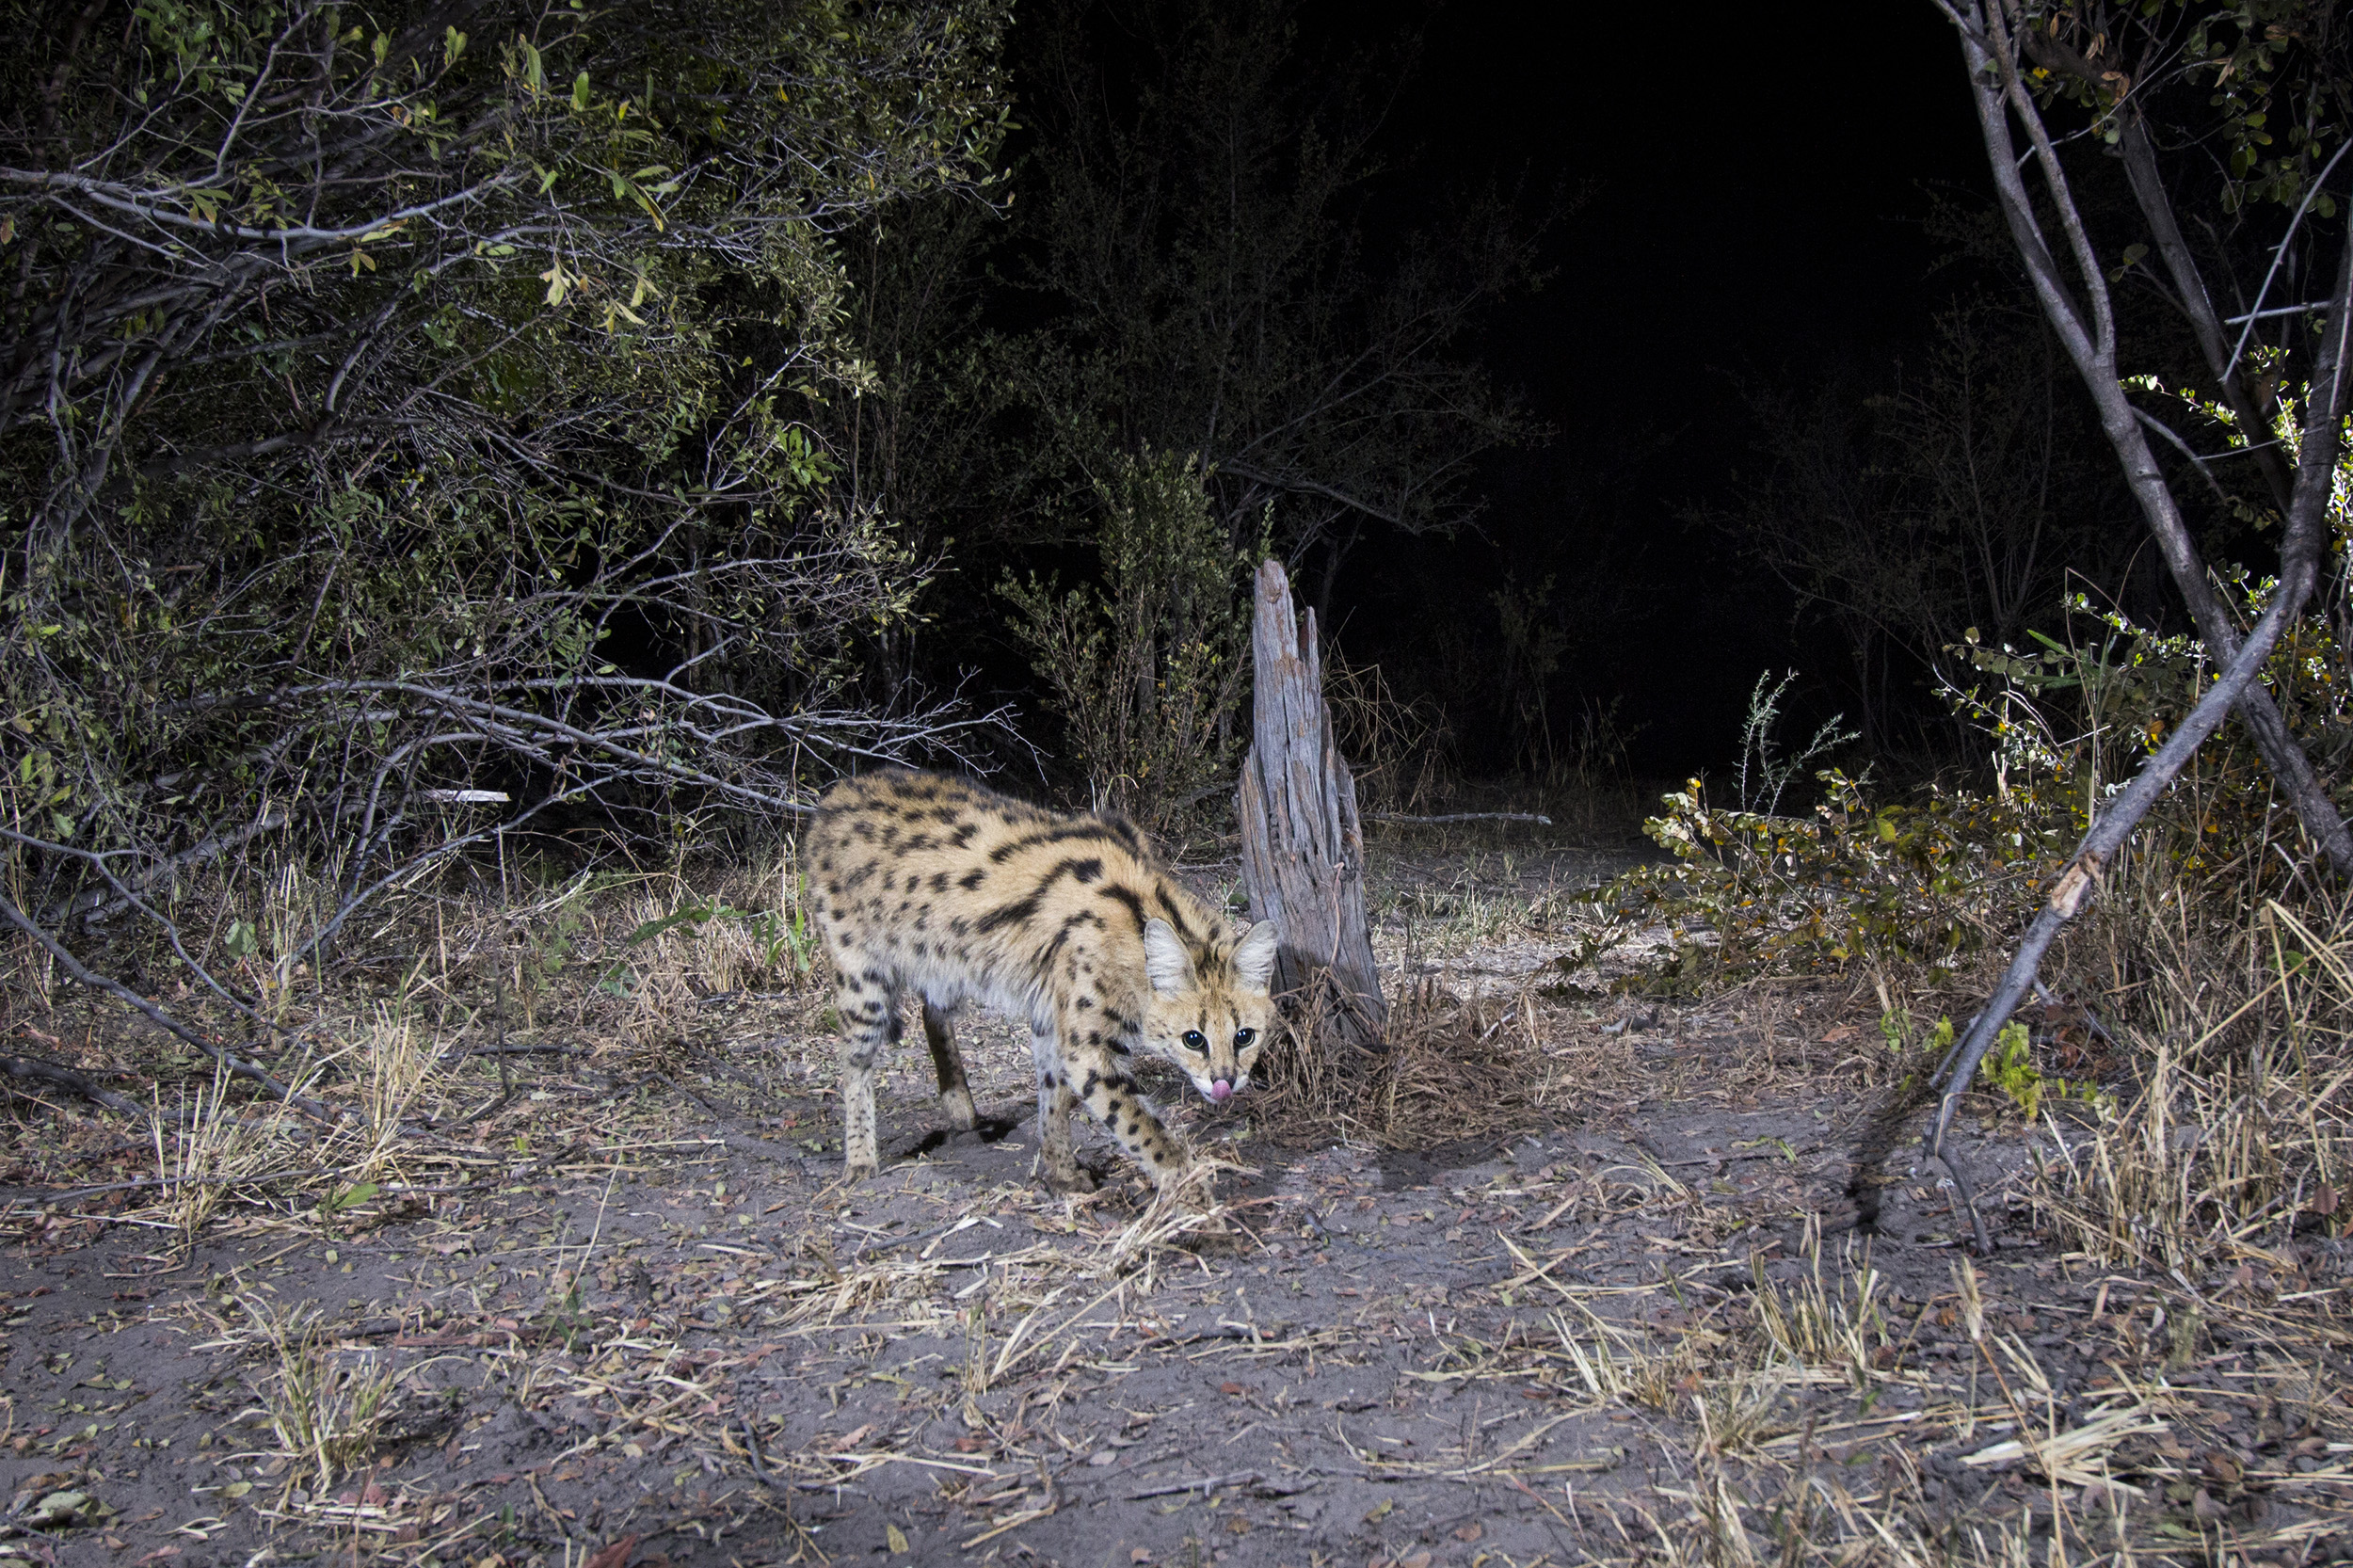 A camera trap image of a serval using Camtraptions PIR motion sensor.